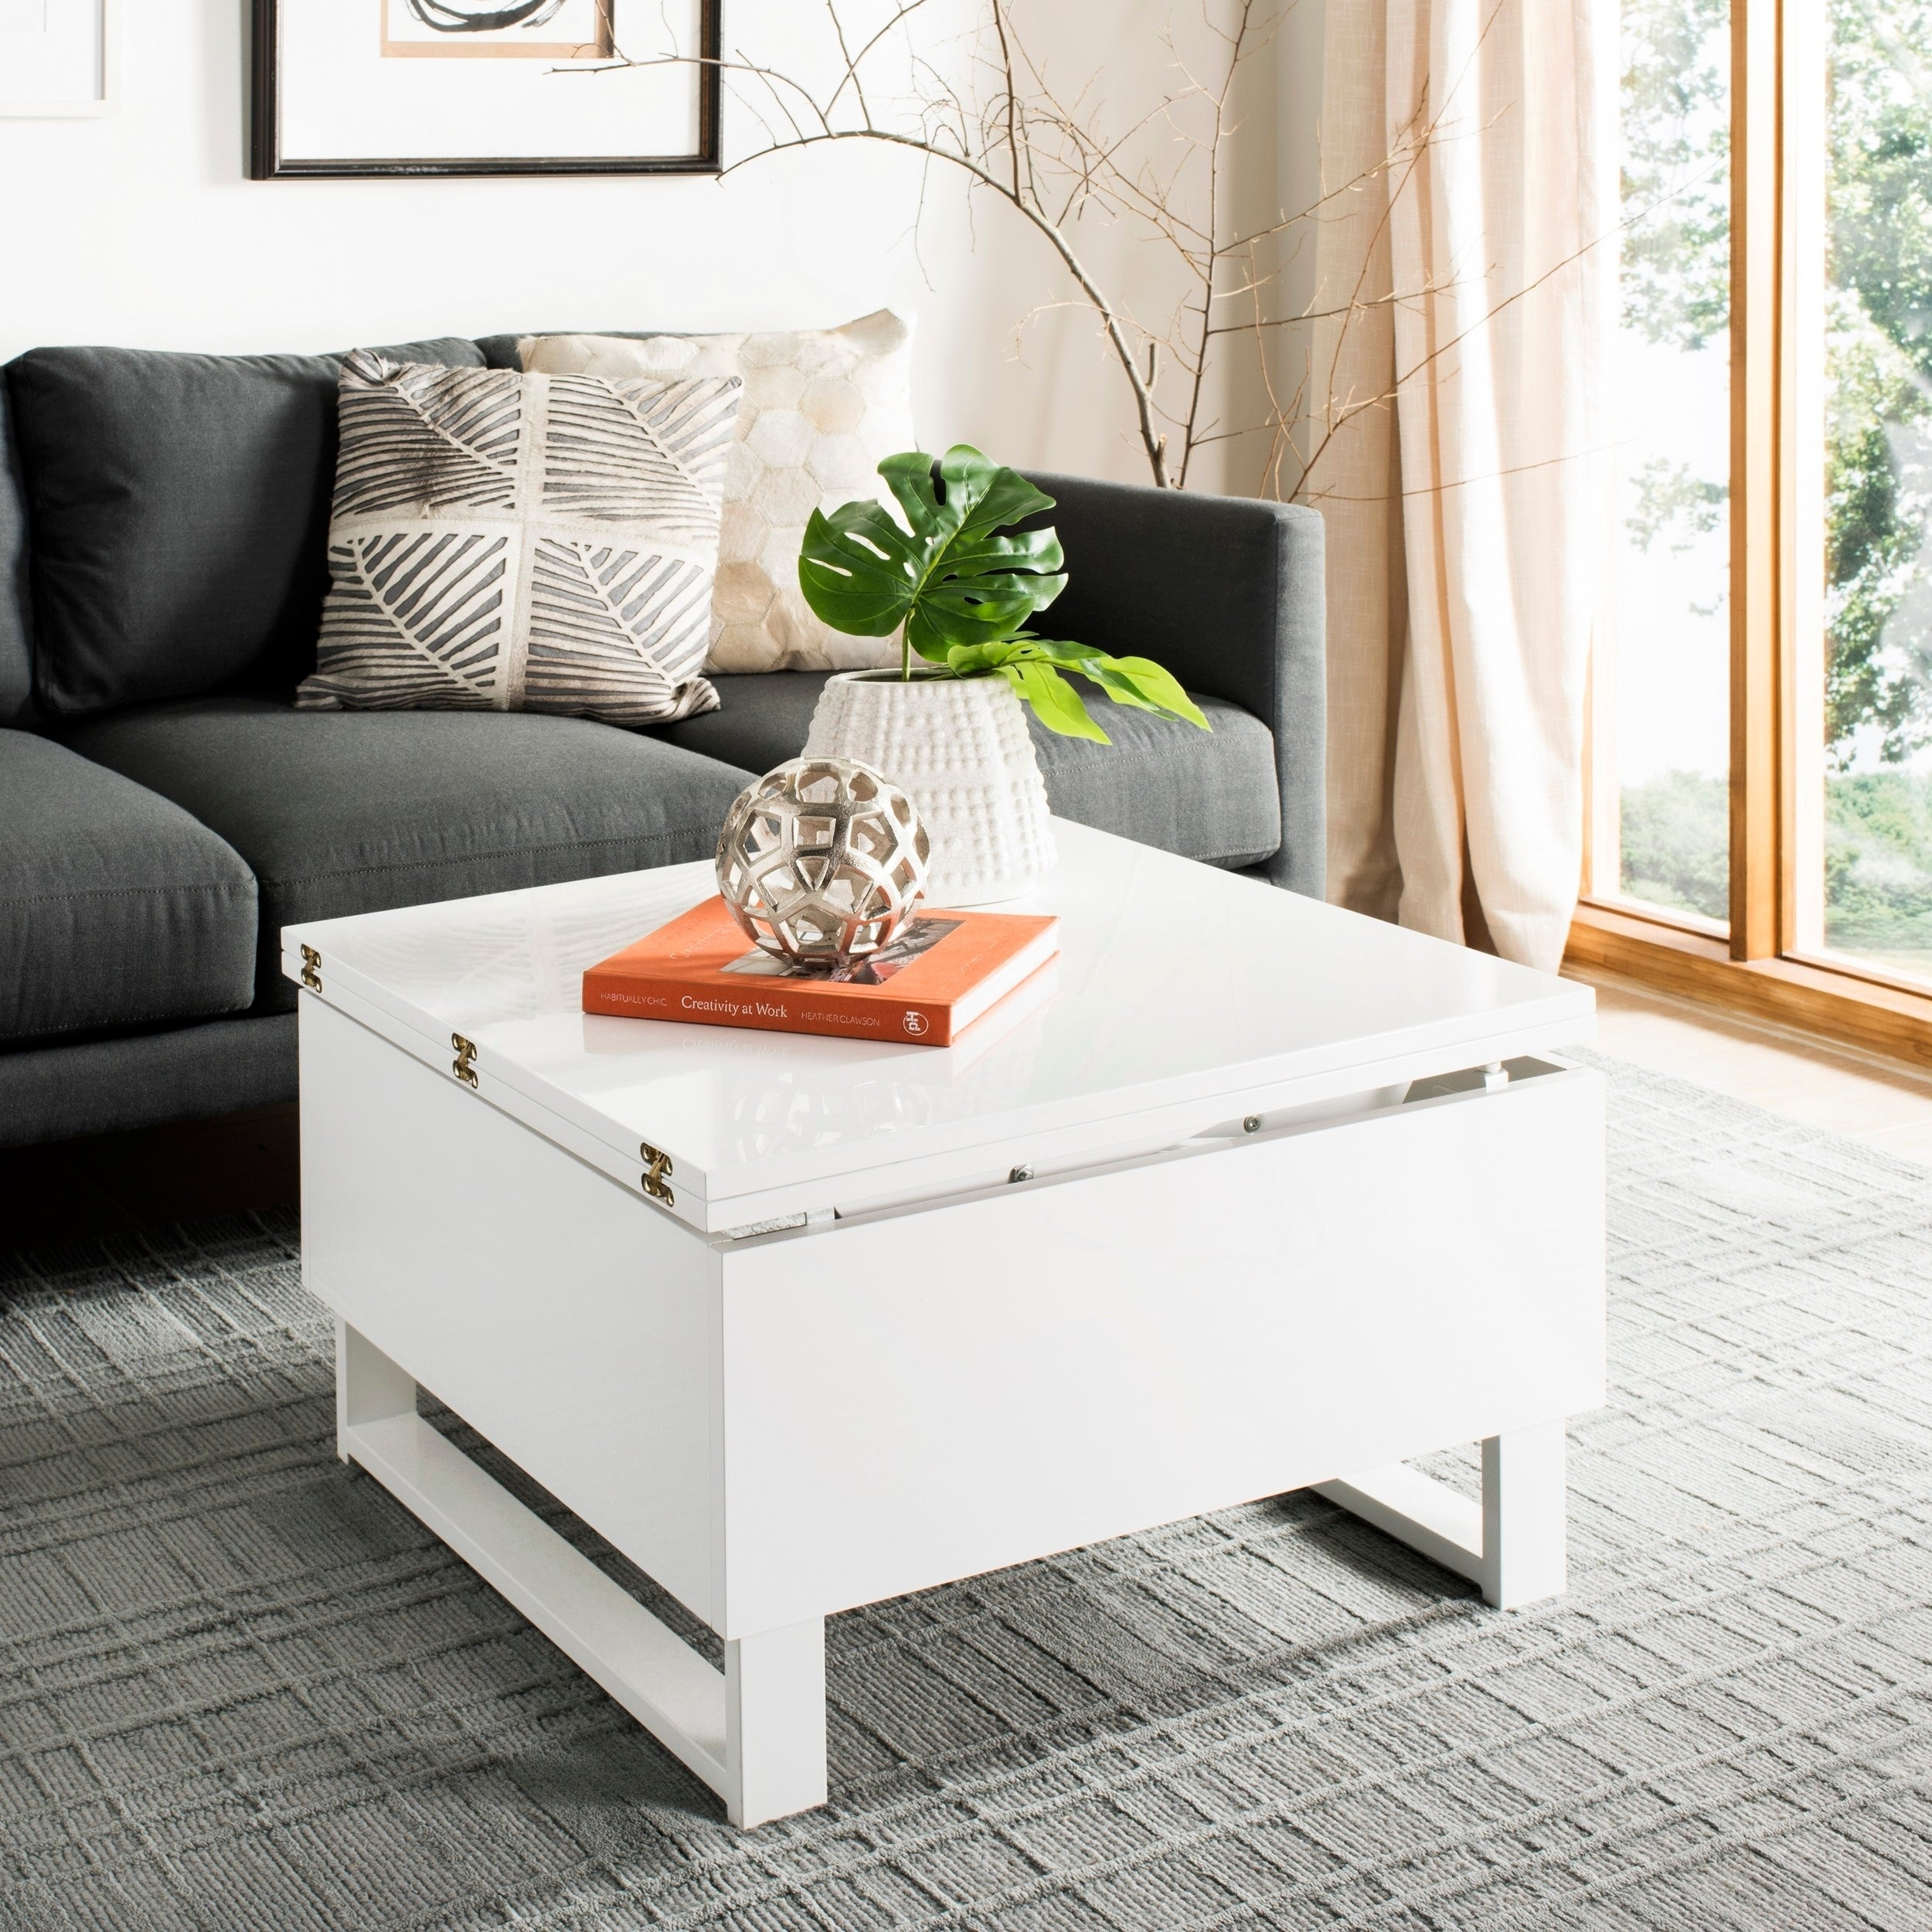 - Shop Safavieh Vanna White Lift-Top Coffee Table - 27.6